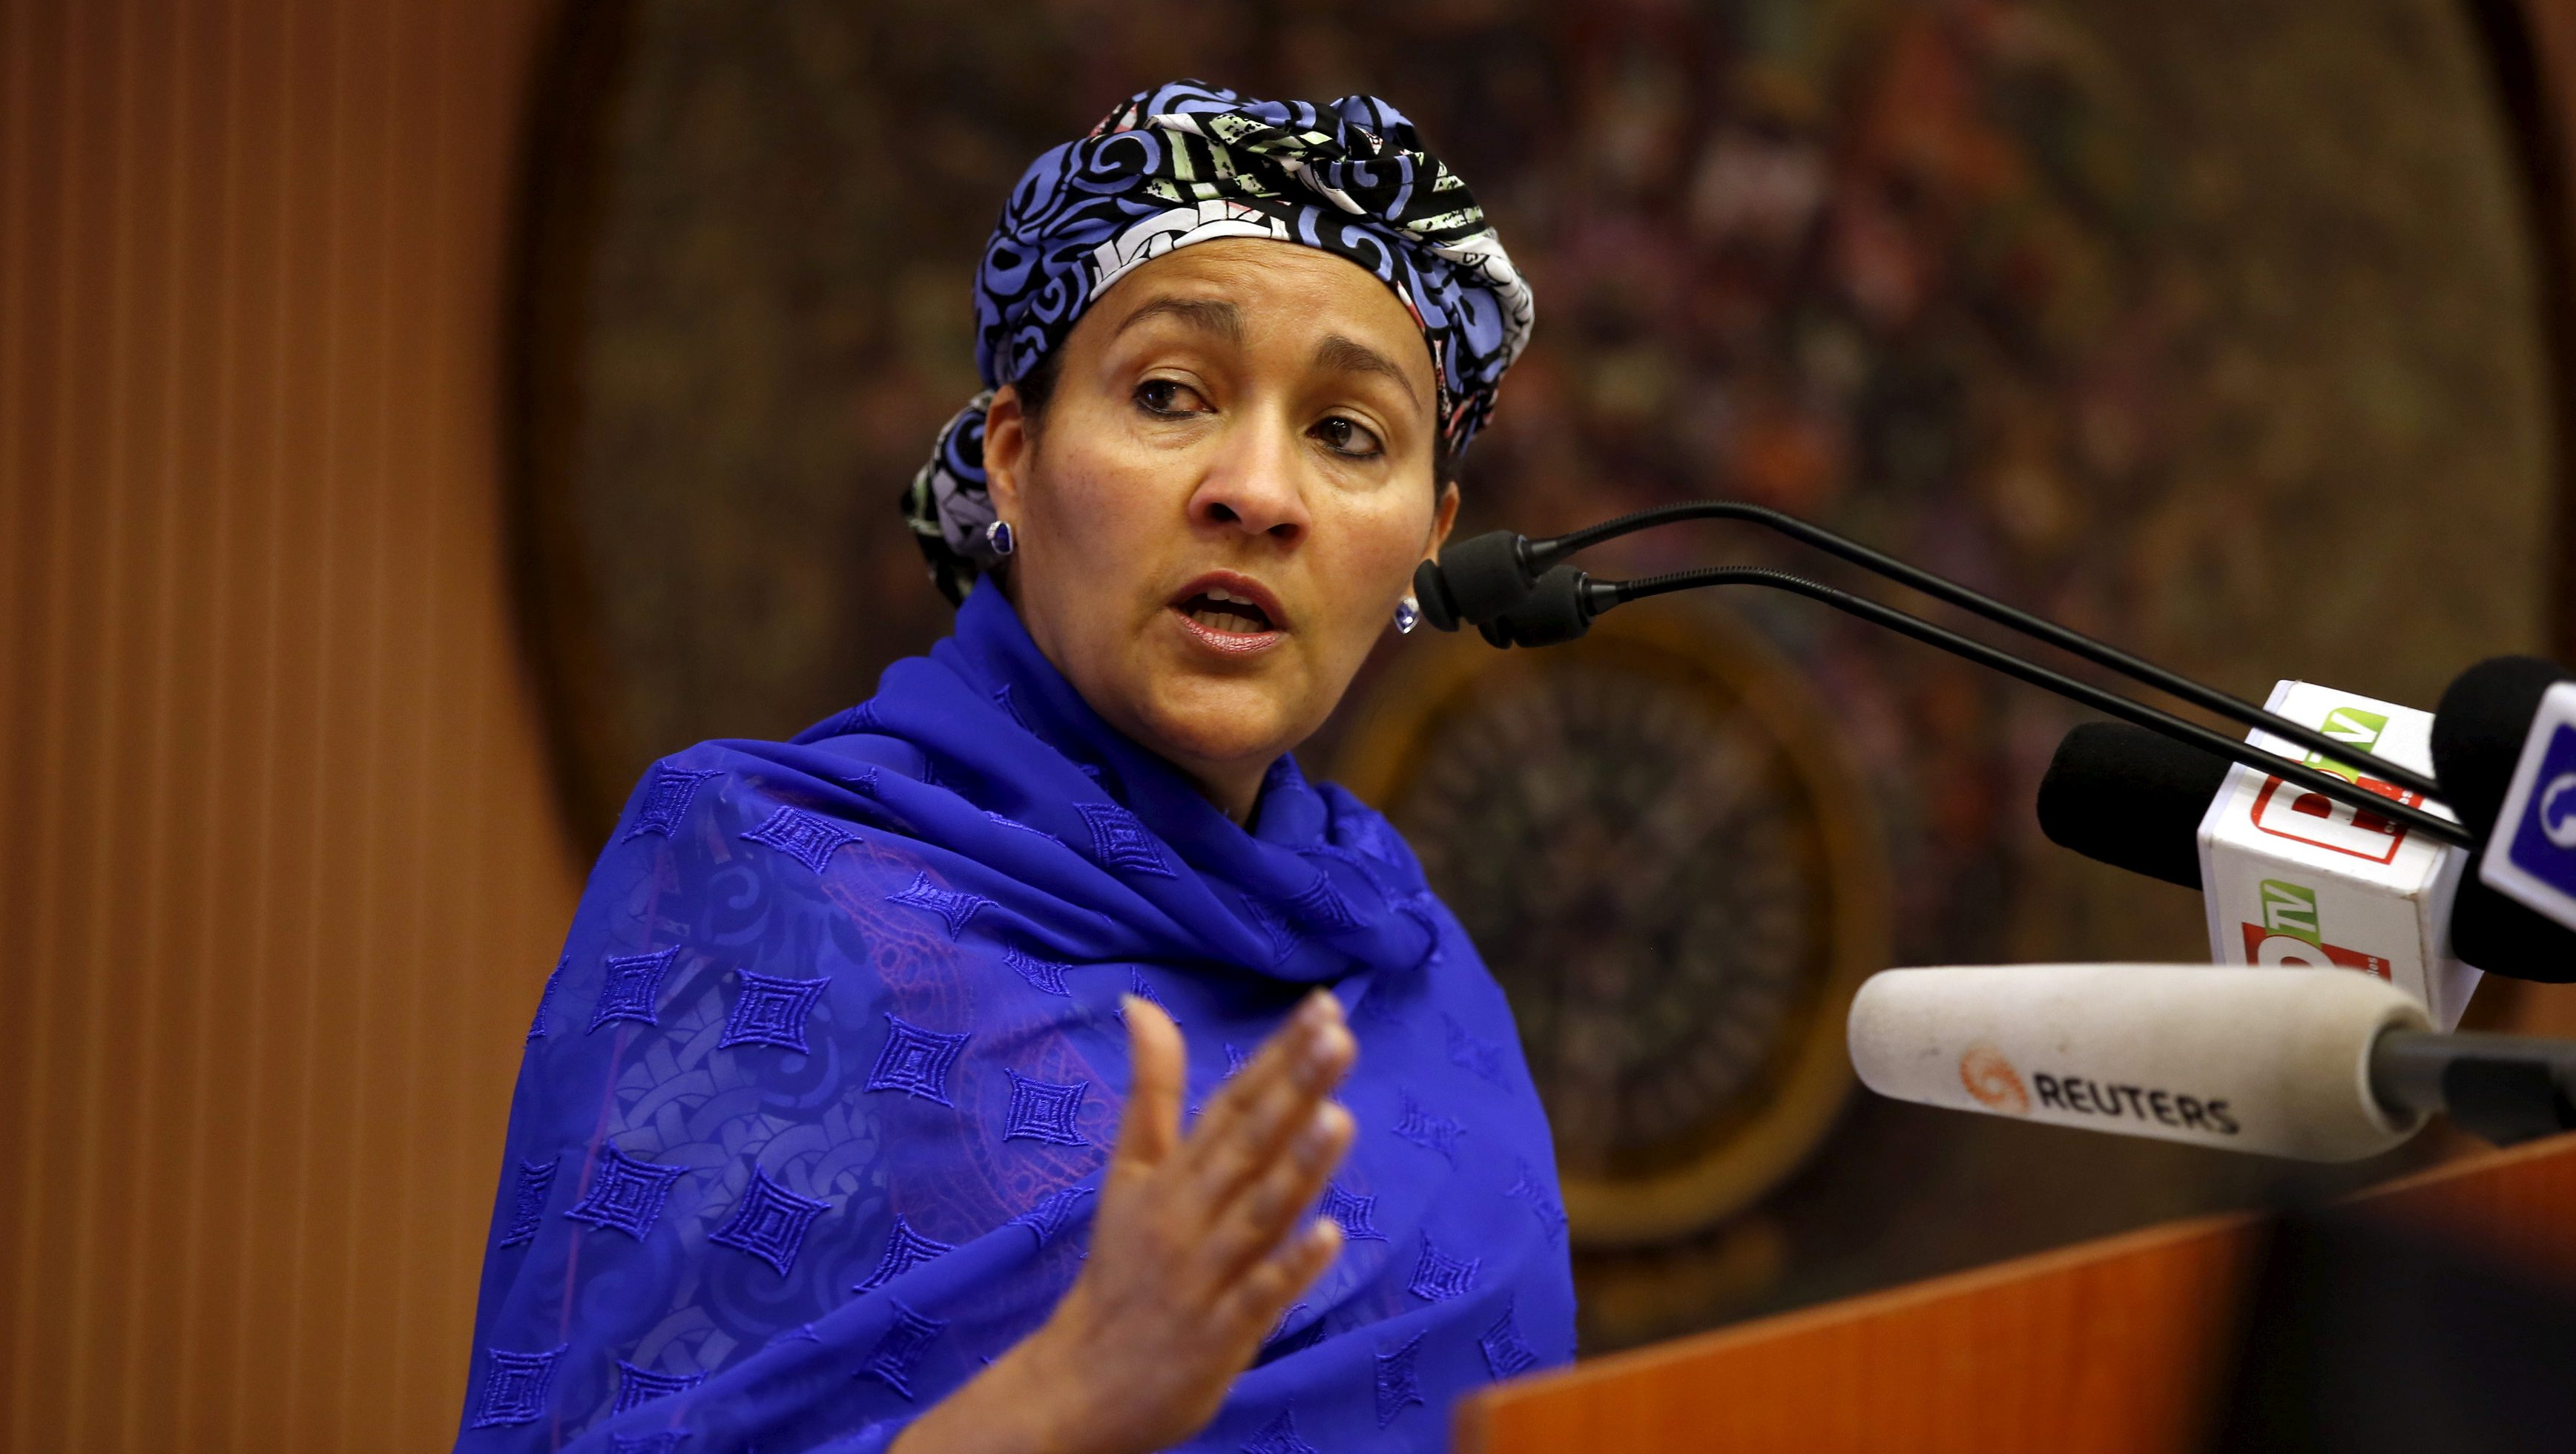 Minister of Environment Amina Mohammed speaks at the opening session of a Public Lecture on Nigeria and the commonwealth of Nations in Abuja